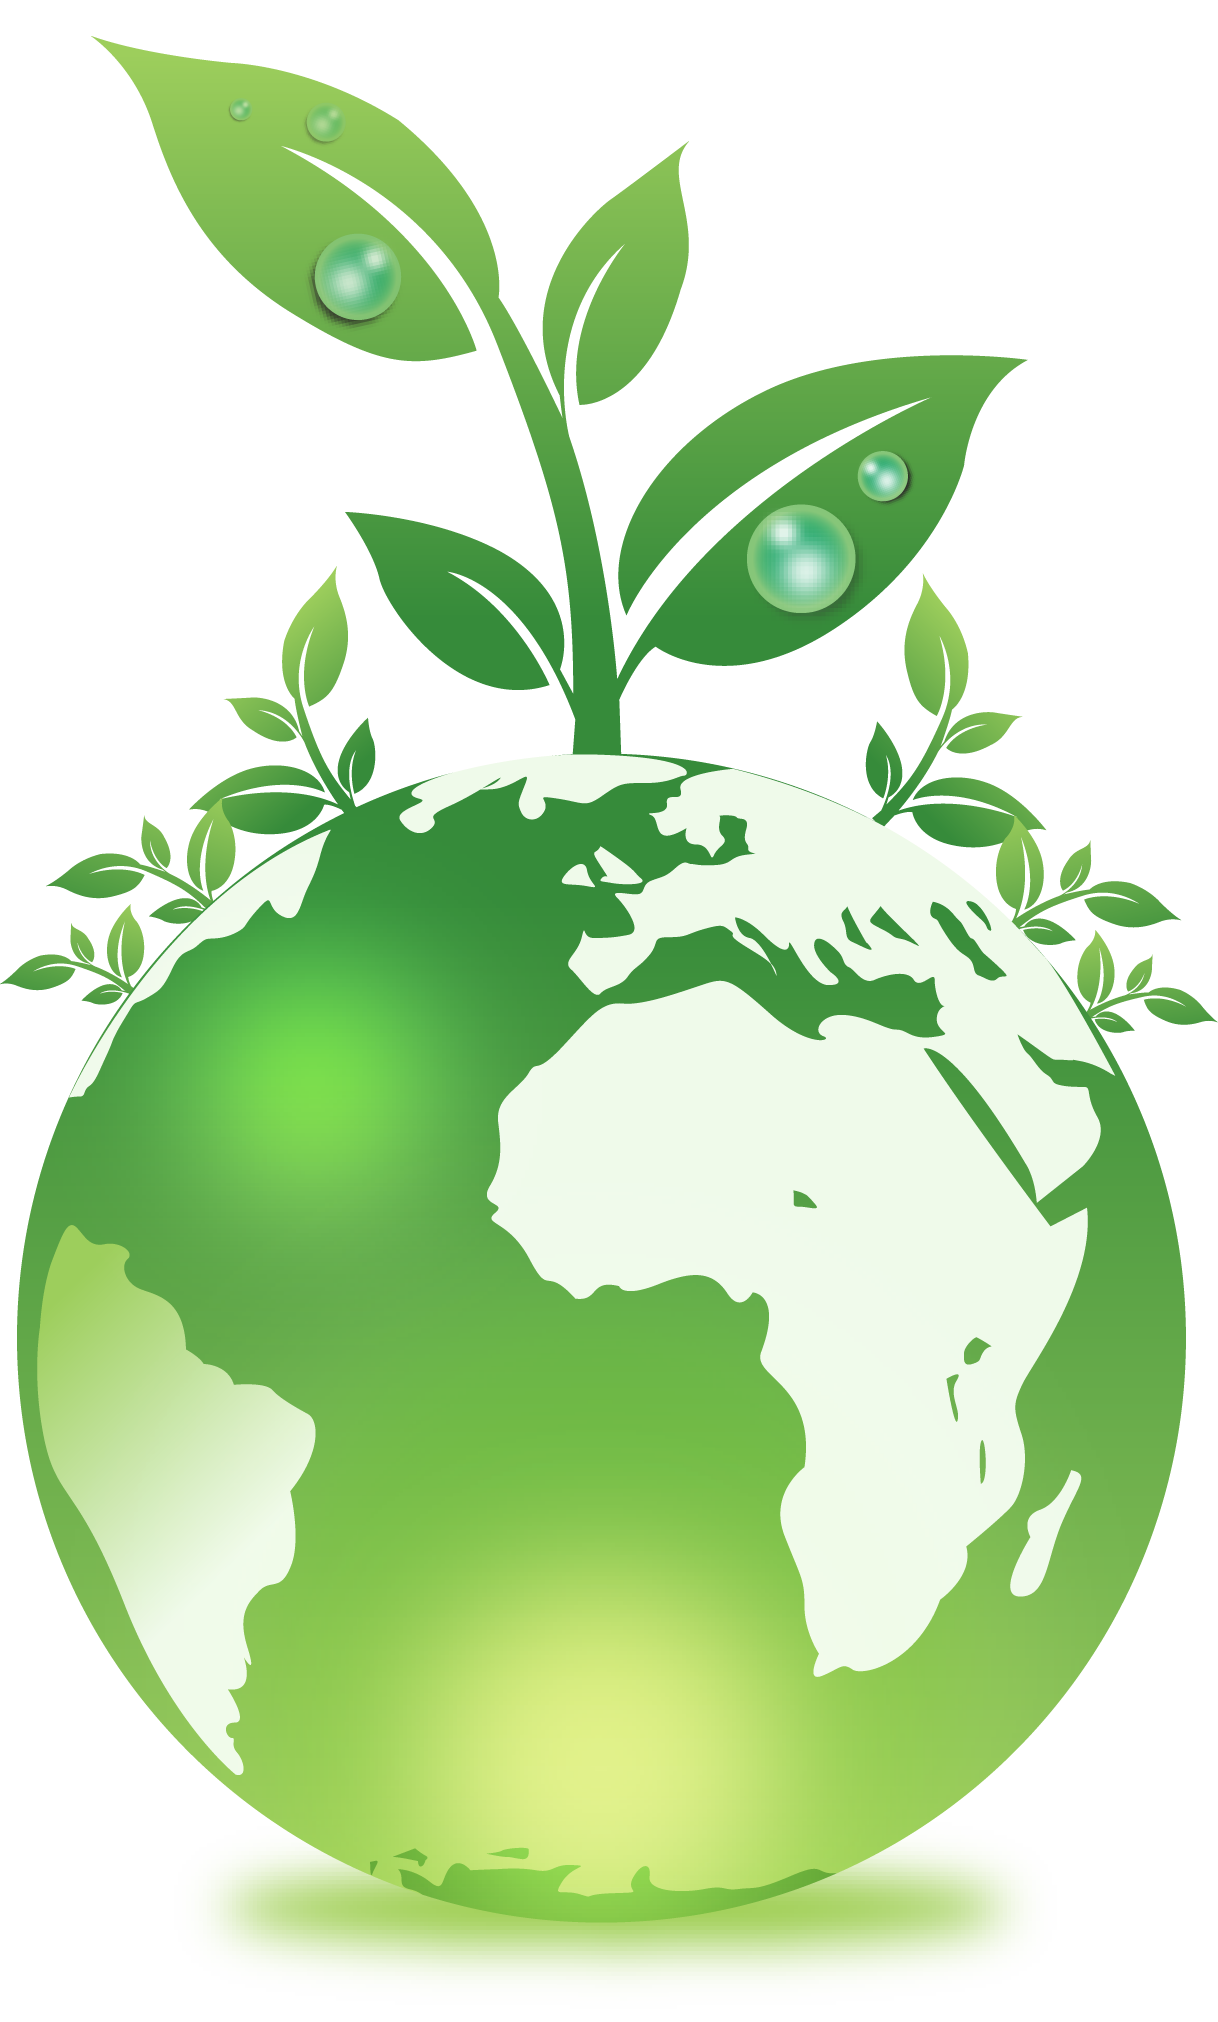 Free Go Green Png, Download Free Clip Art, Free Clip Art on Clipart.